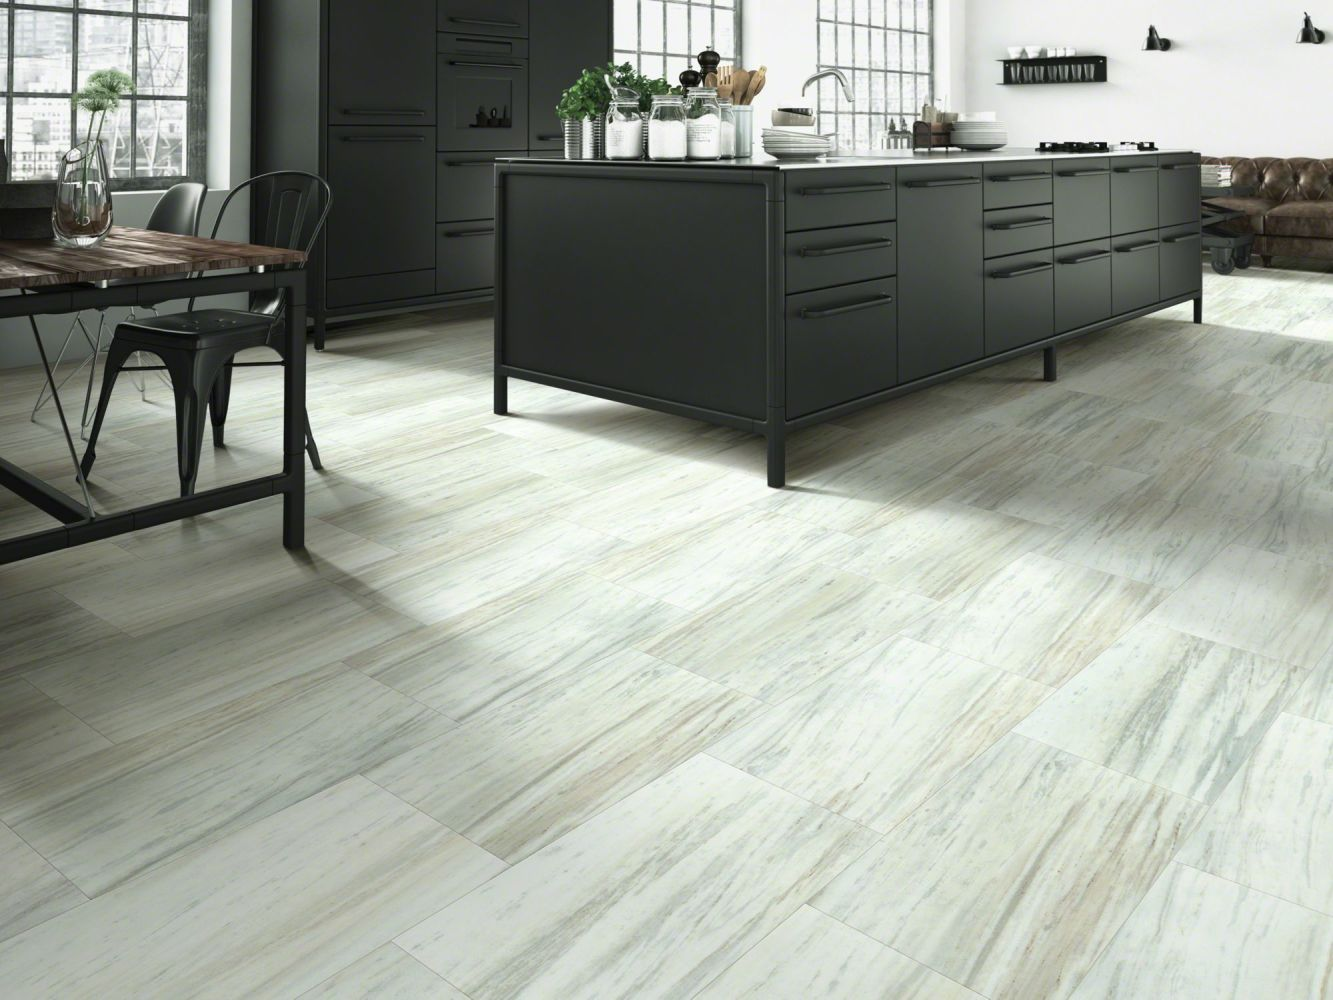 Shaw Floors Resilient Residential Set In Stone 720c Plus Glacier 00147_0834V